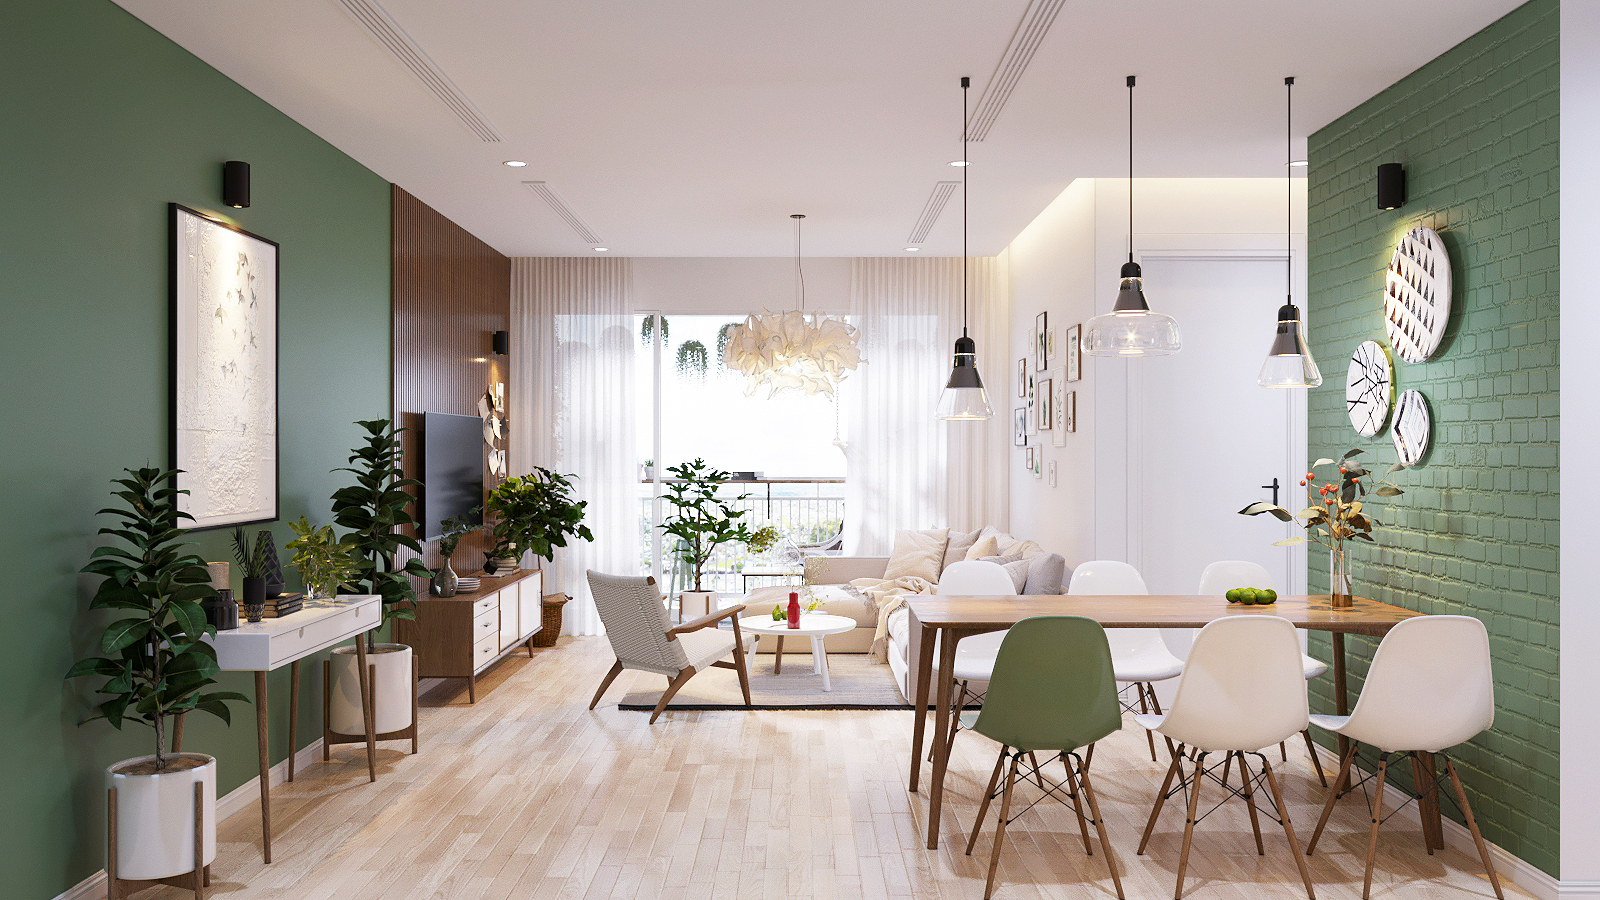 stunning scandinavian interior design | 10 Easy Ways TO Create Stunning Scandinavian Interior Design